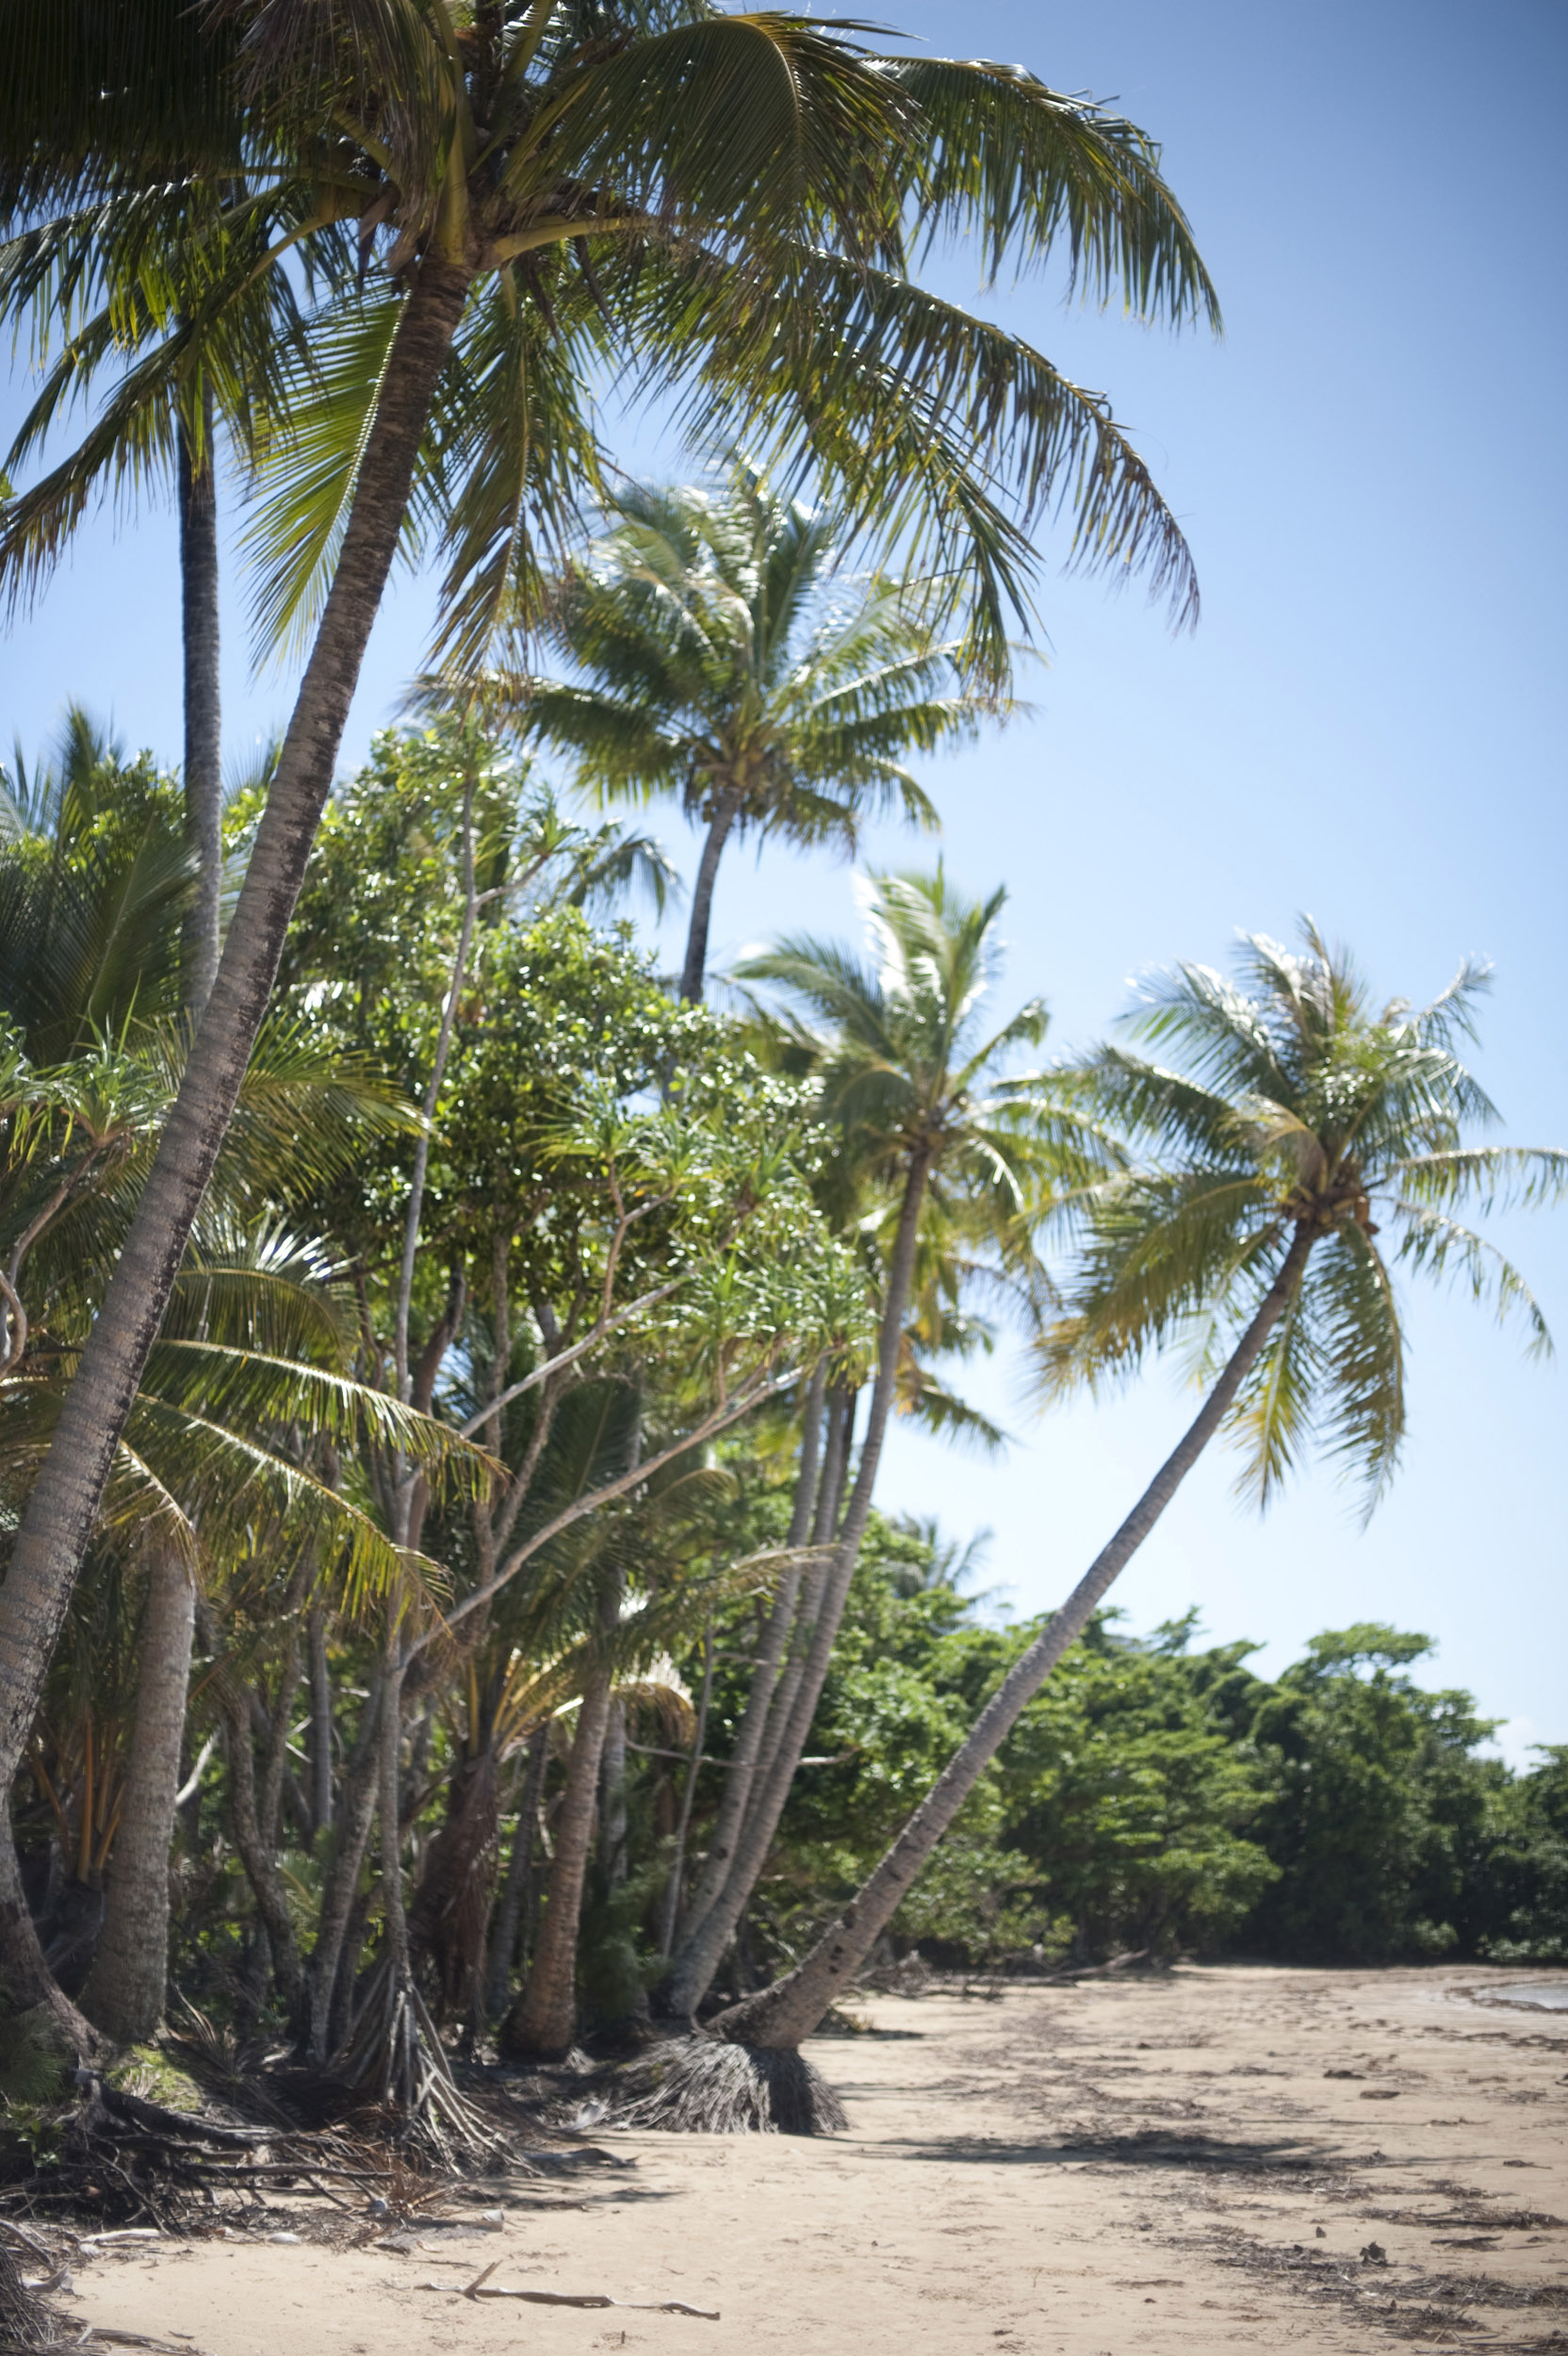 Palm trees at Mission Beach, Queensland, Australia with its deserted golden sand perfect for a tropical holiday or vacation